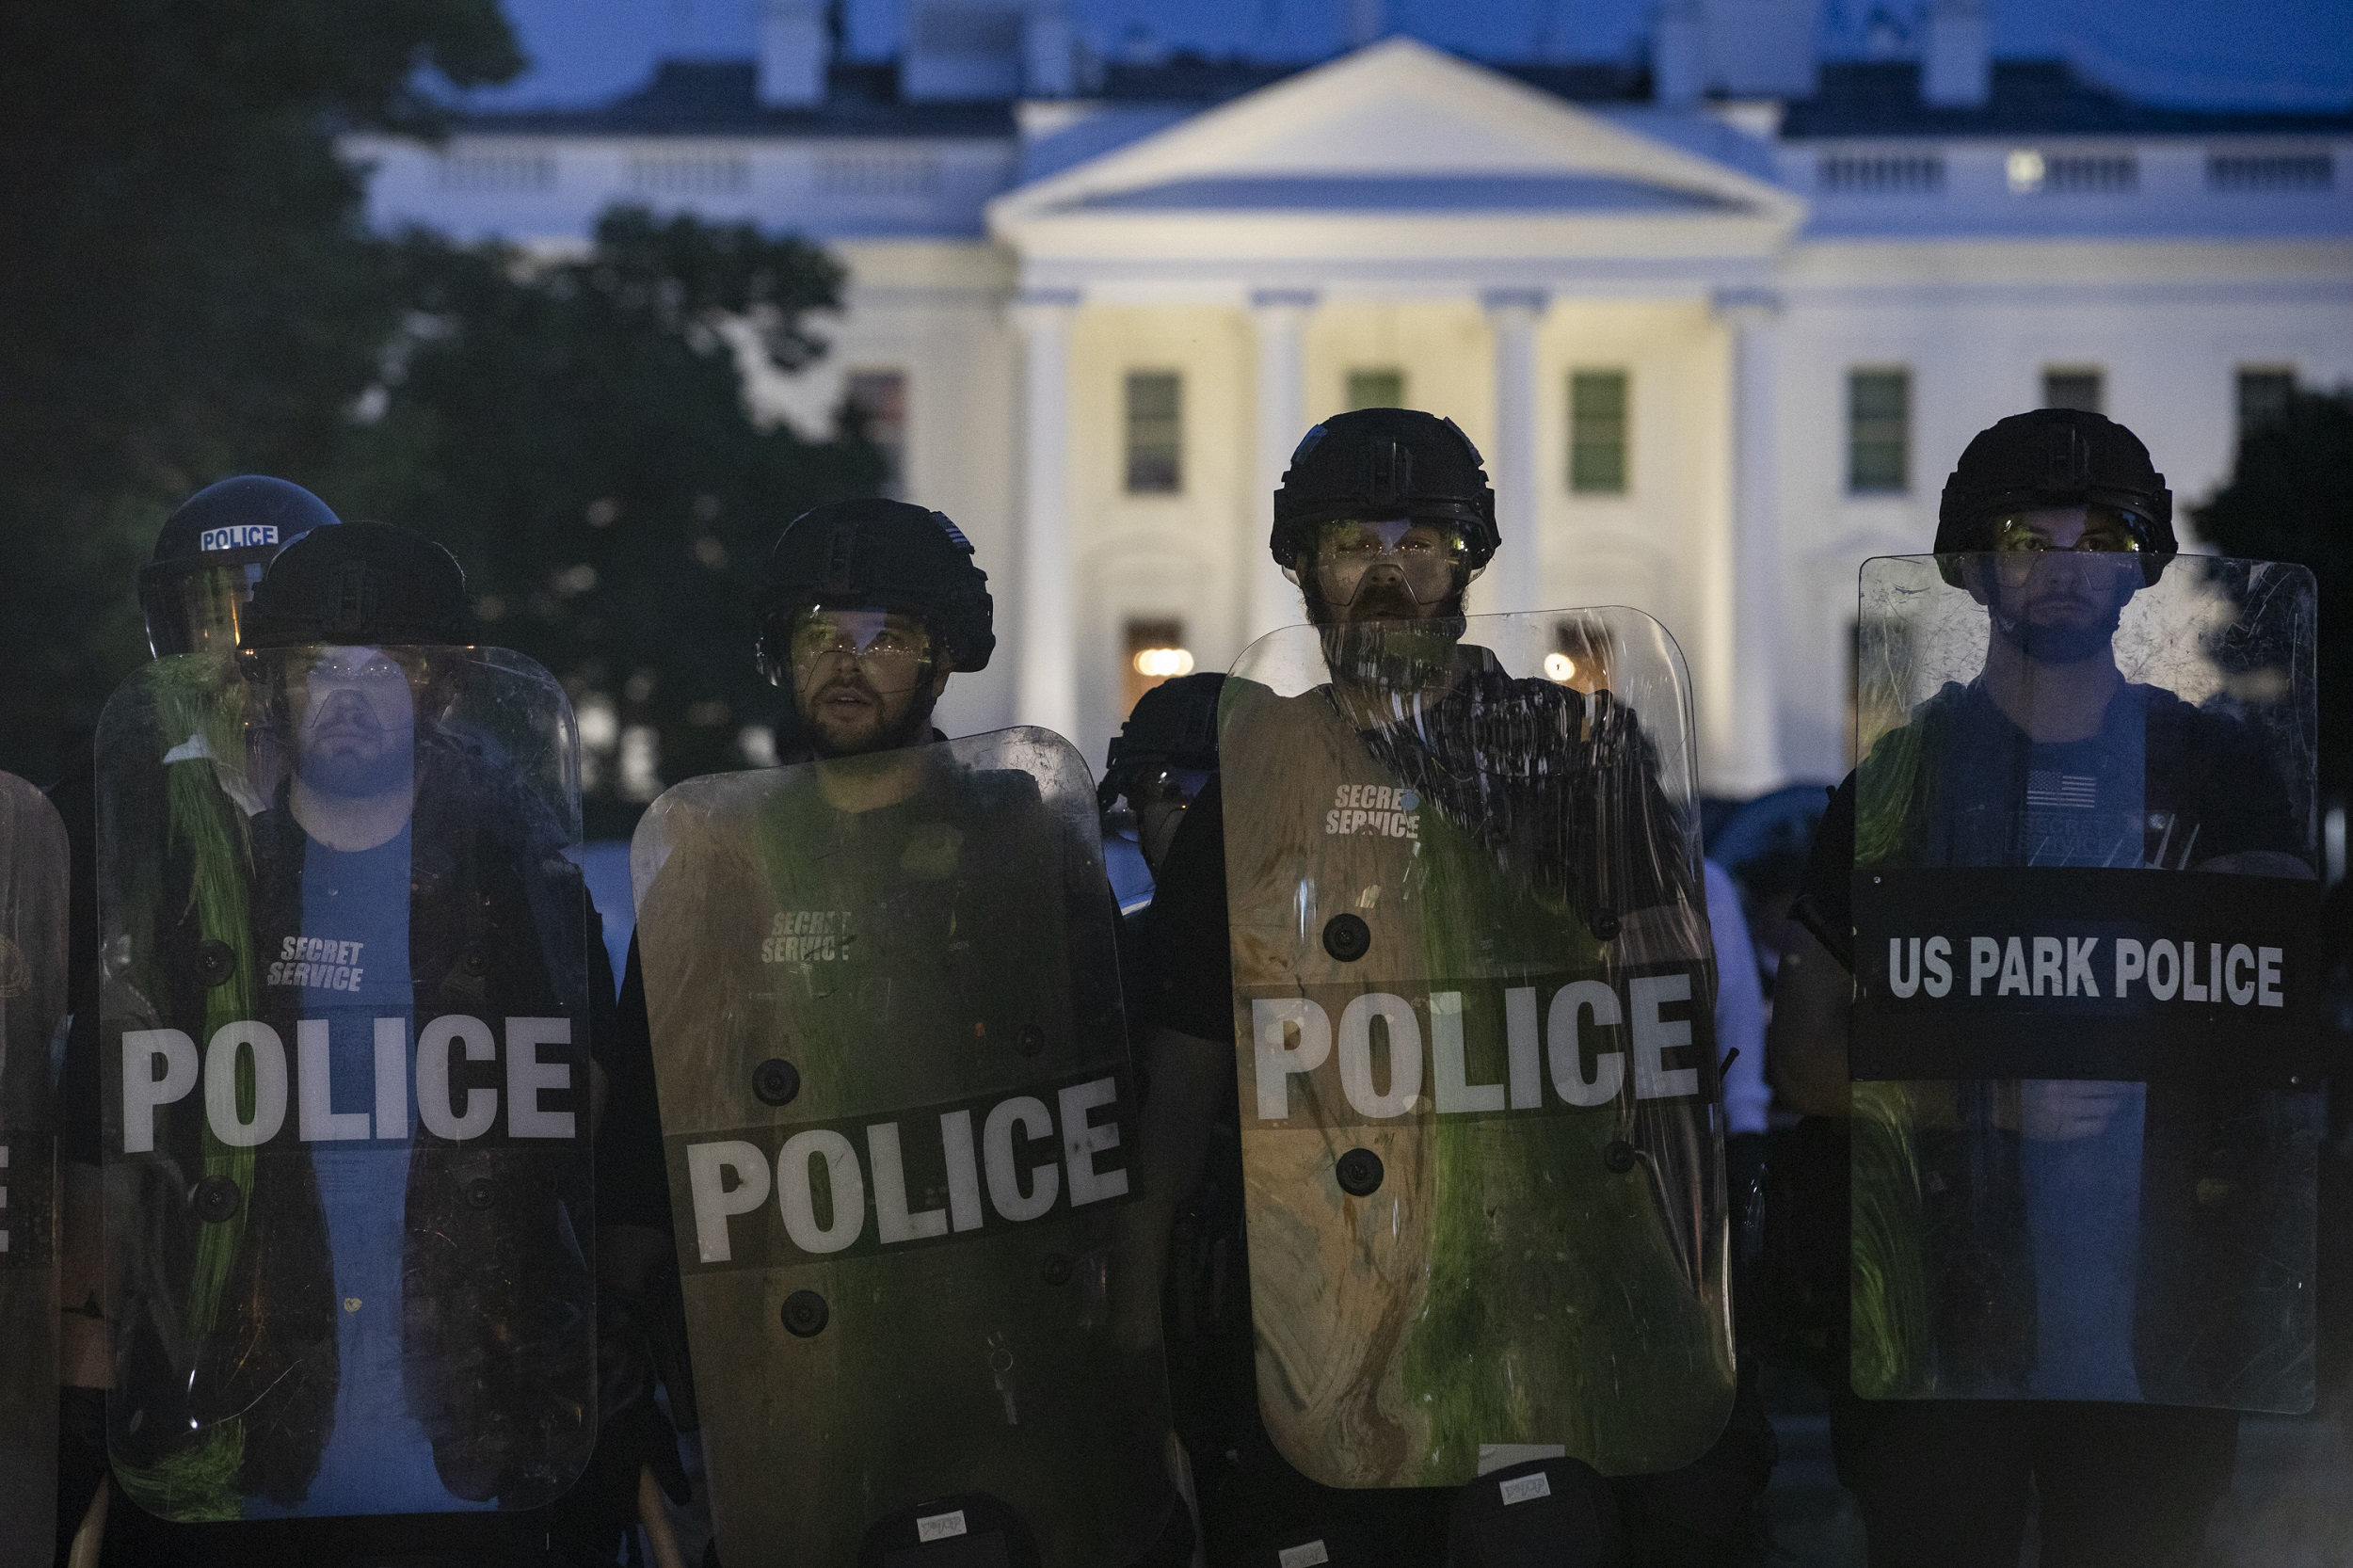 Police stand guard outside the White House as people gather to protest the death of George Floyd in Washington, DC.